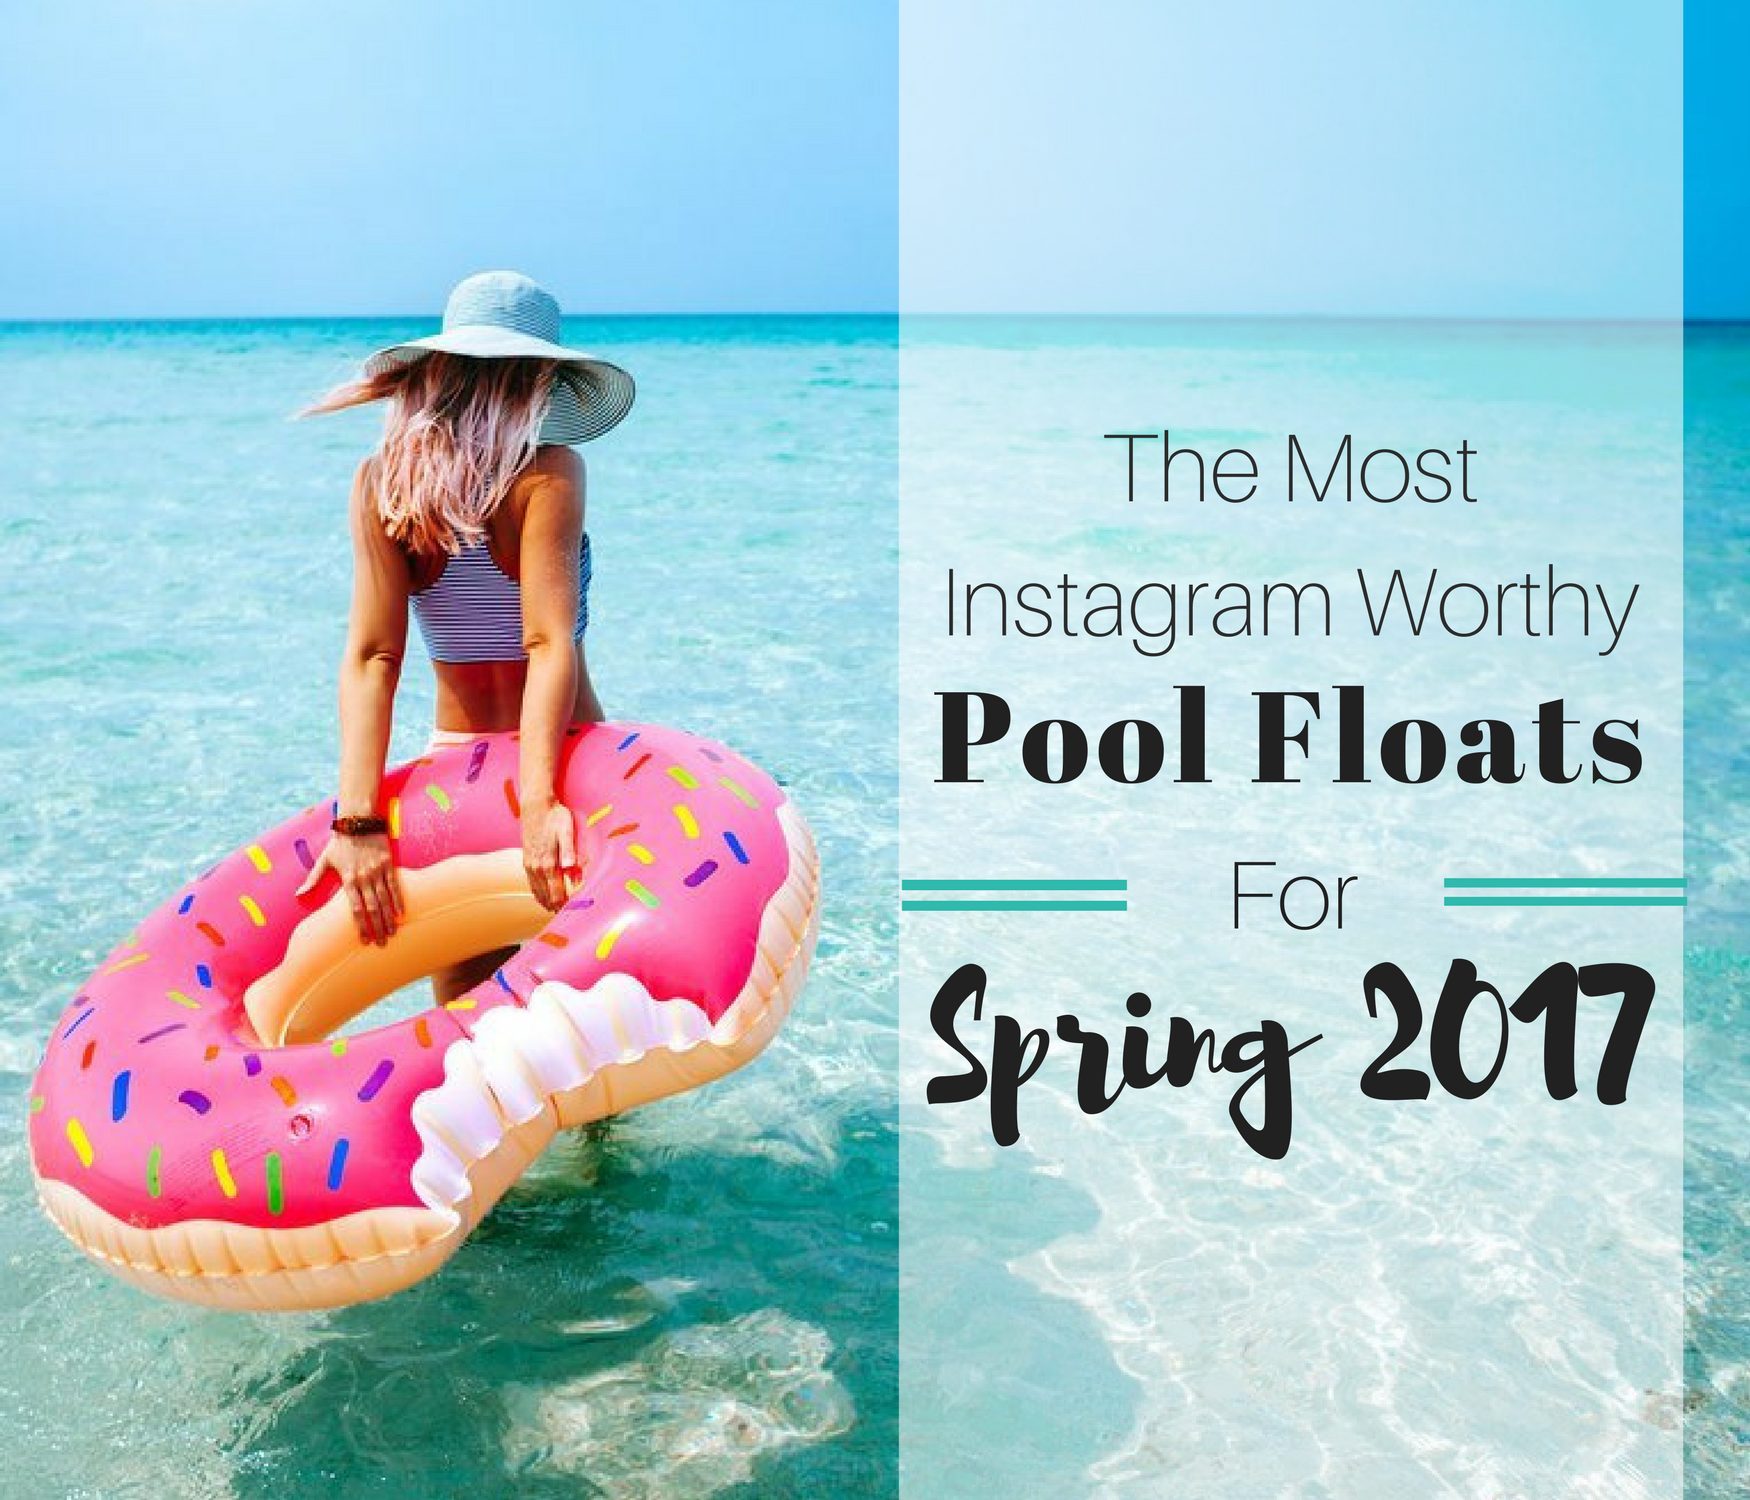 The Most Instagram Worthy Pool Floats For Spring 2017